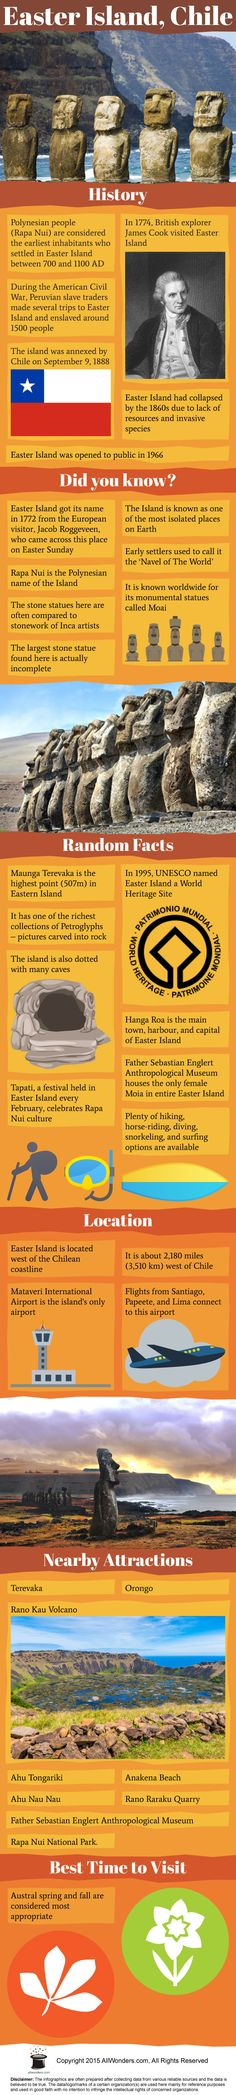 Easter Island Infographic                                                       …